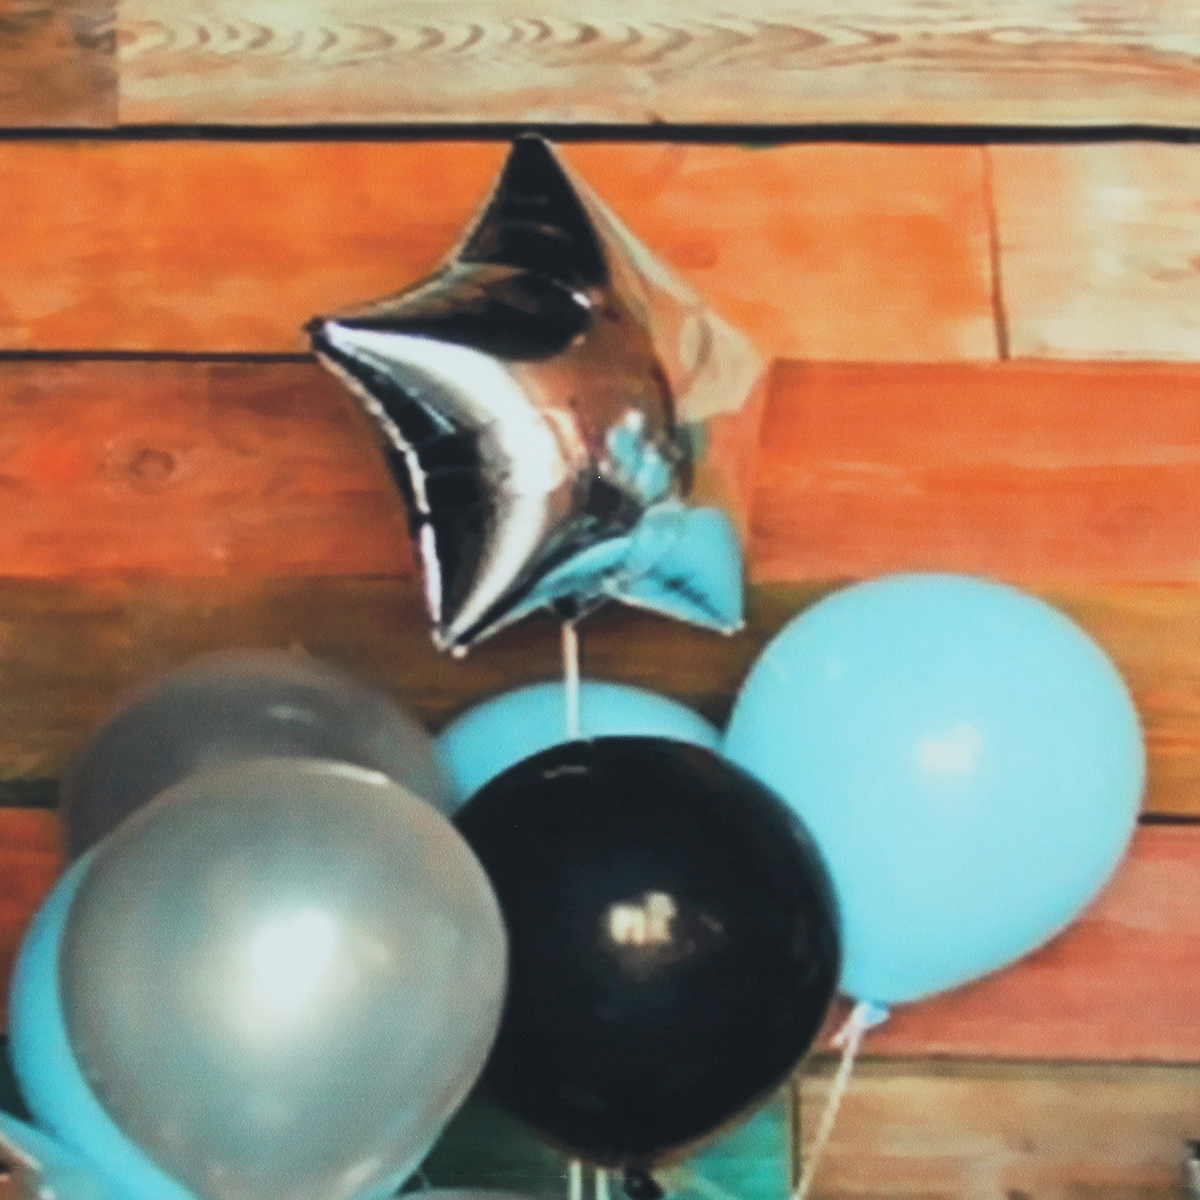 5x3ft 7x5ft Blue Balloon Colorful Wall Baby 1st Birthday Photography Backdrop Studio Prop Background